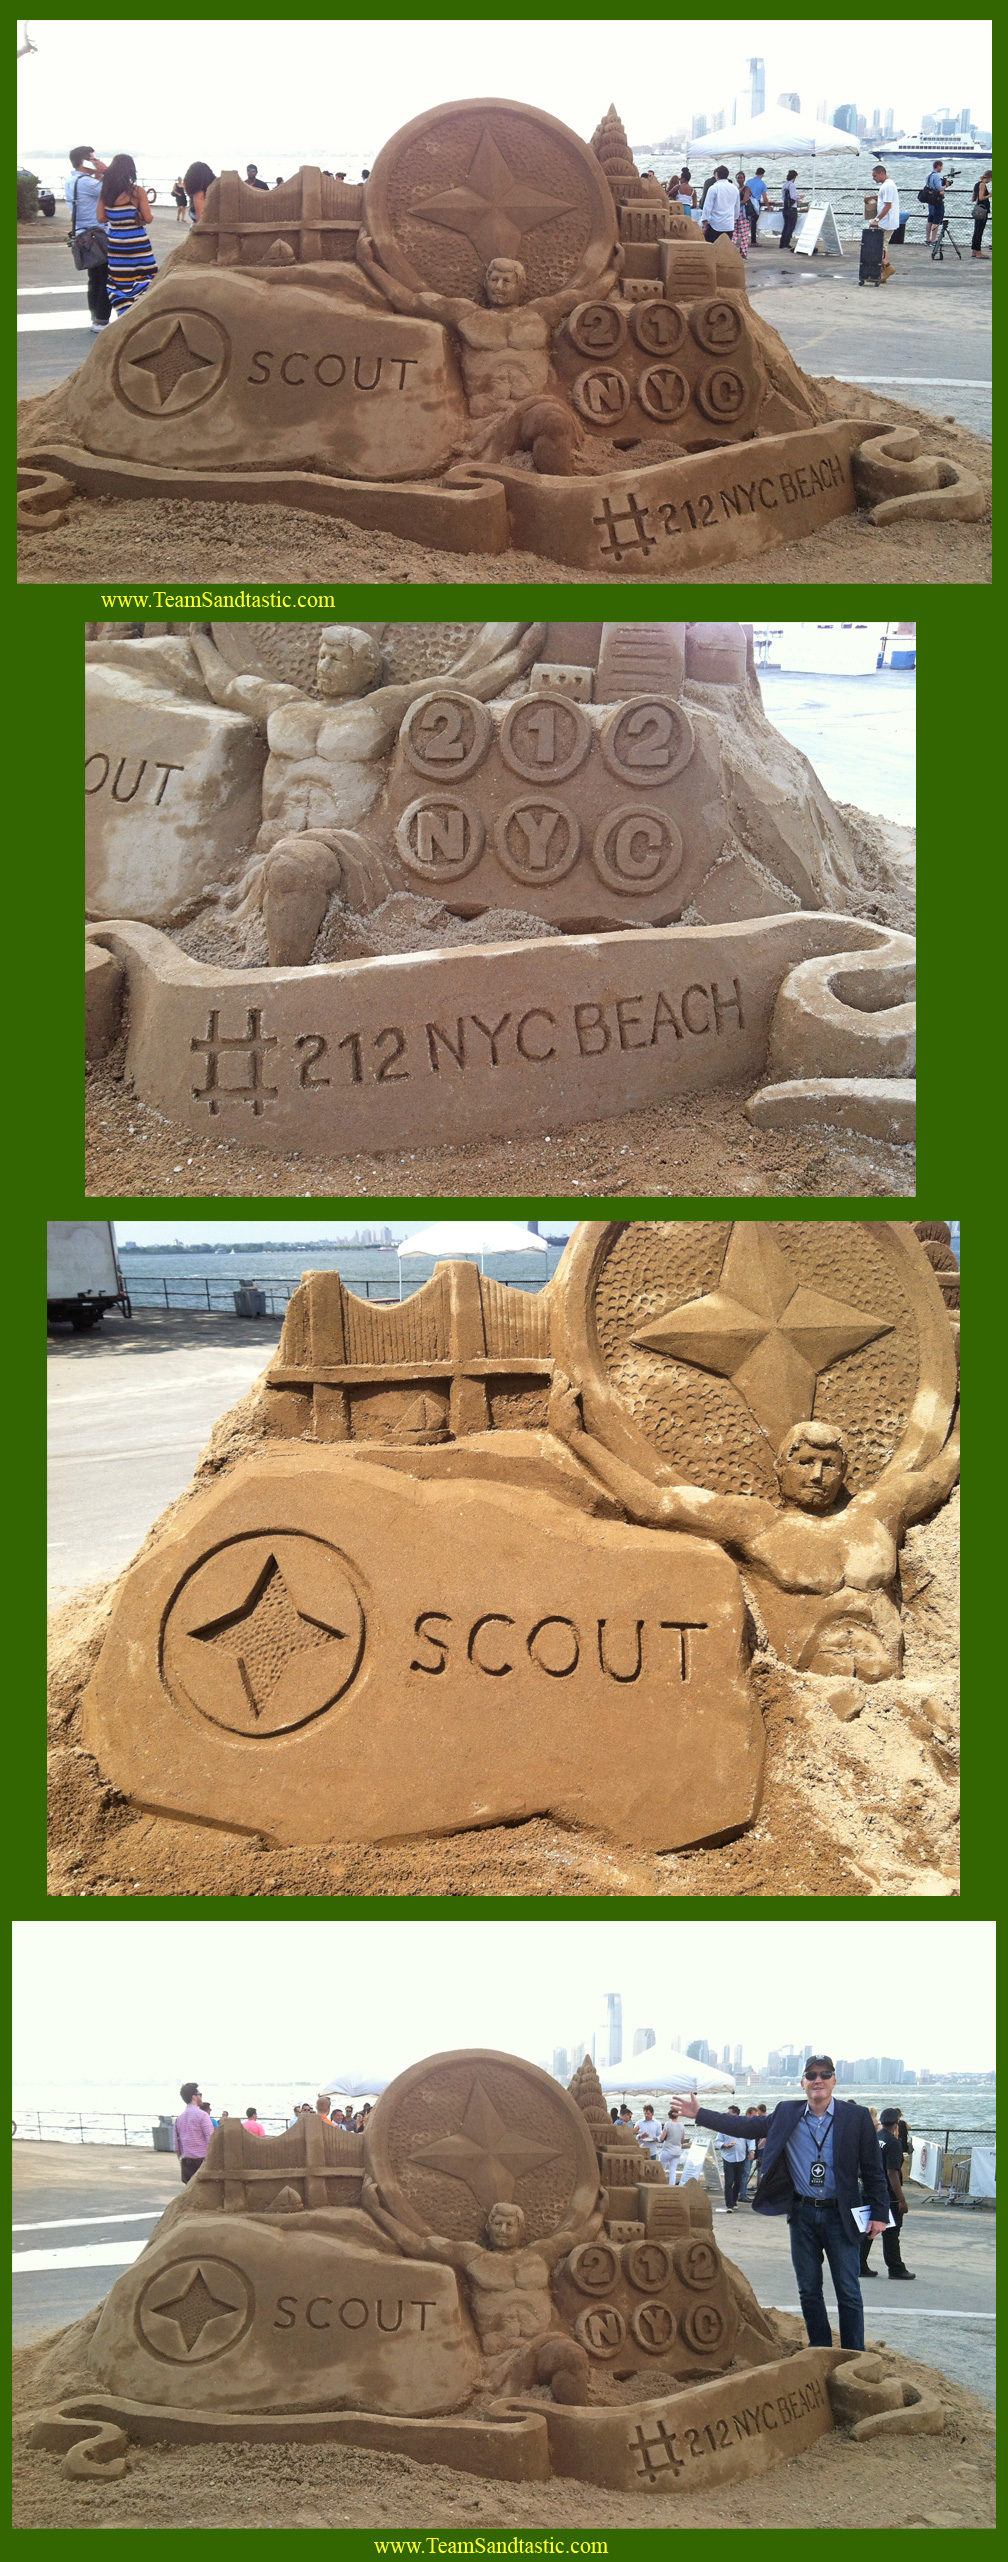 212 NYC Scout Sand Scultpure on Governors Island